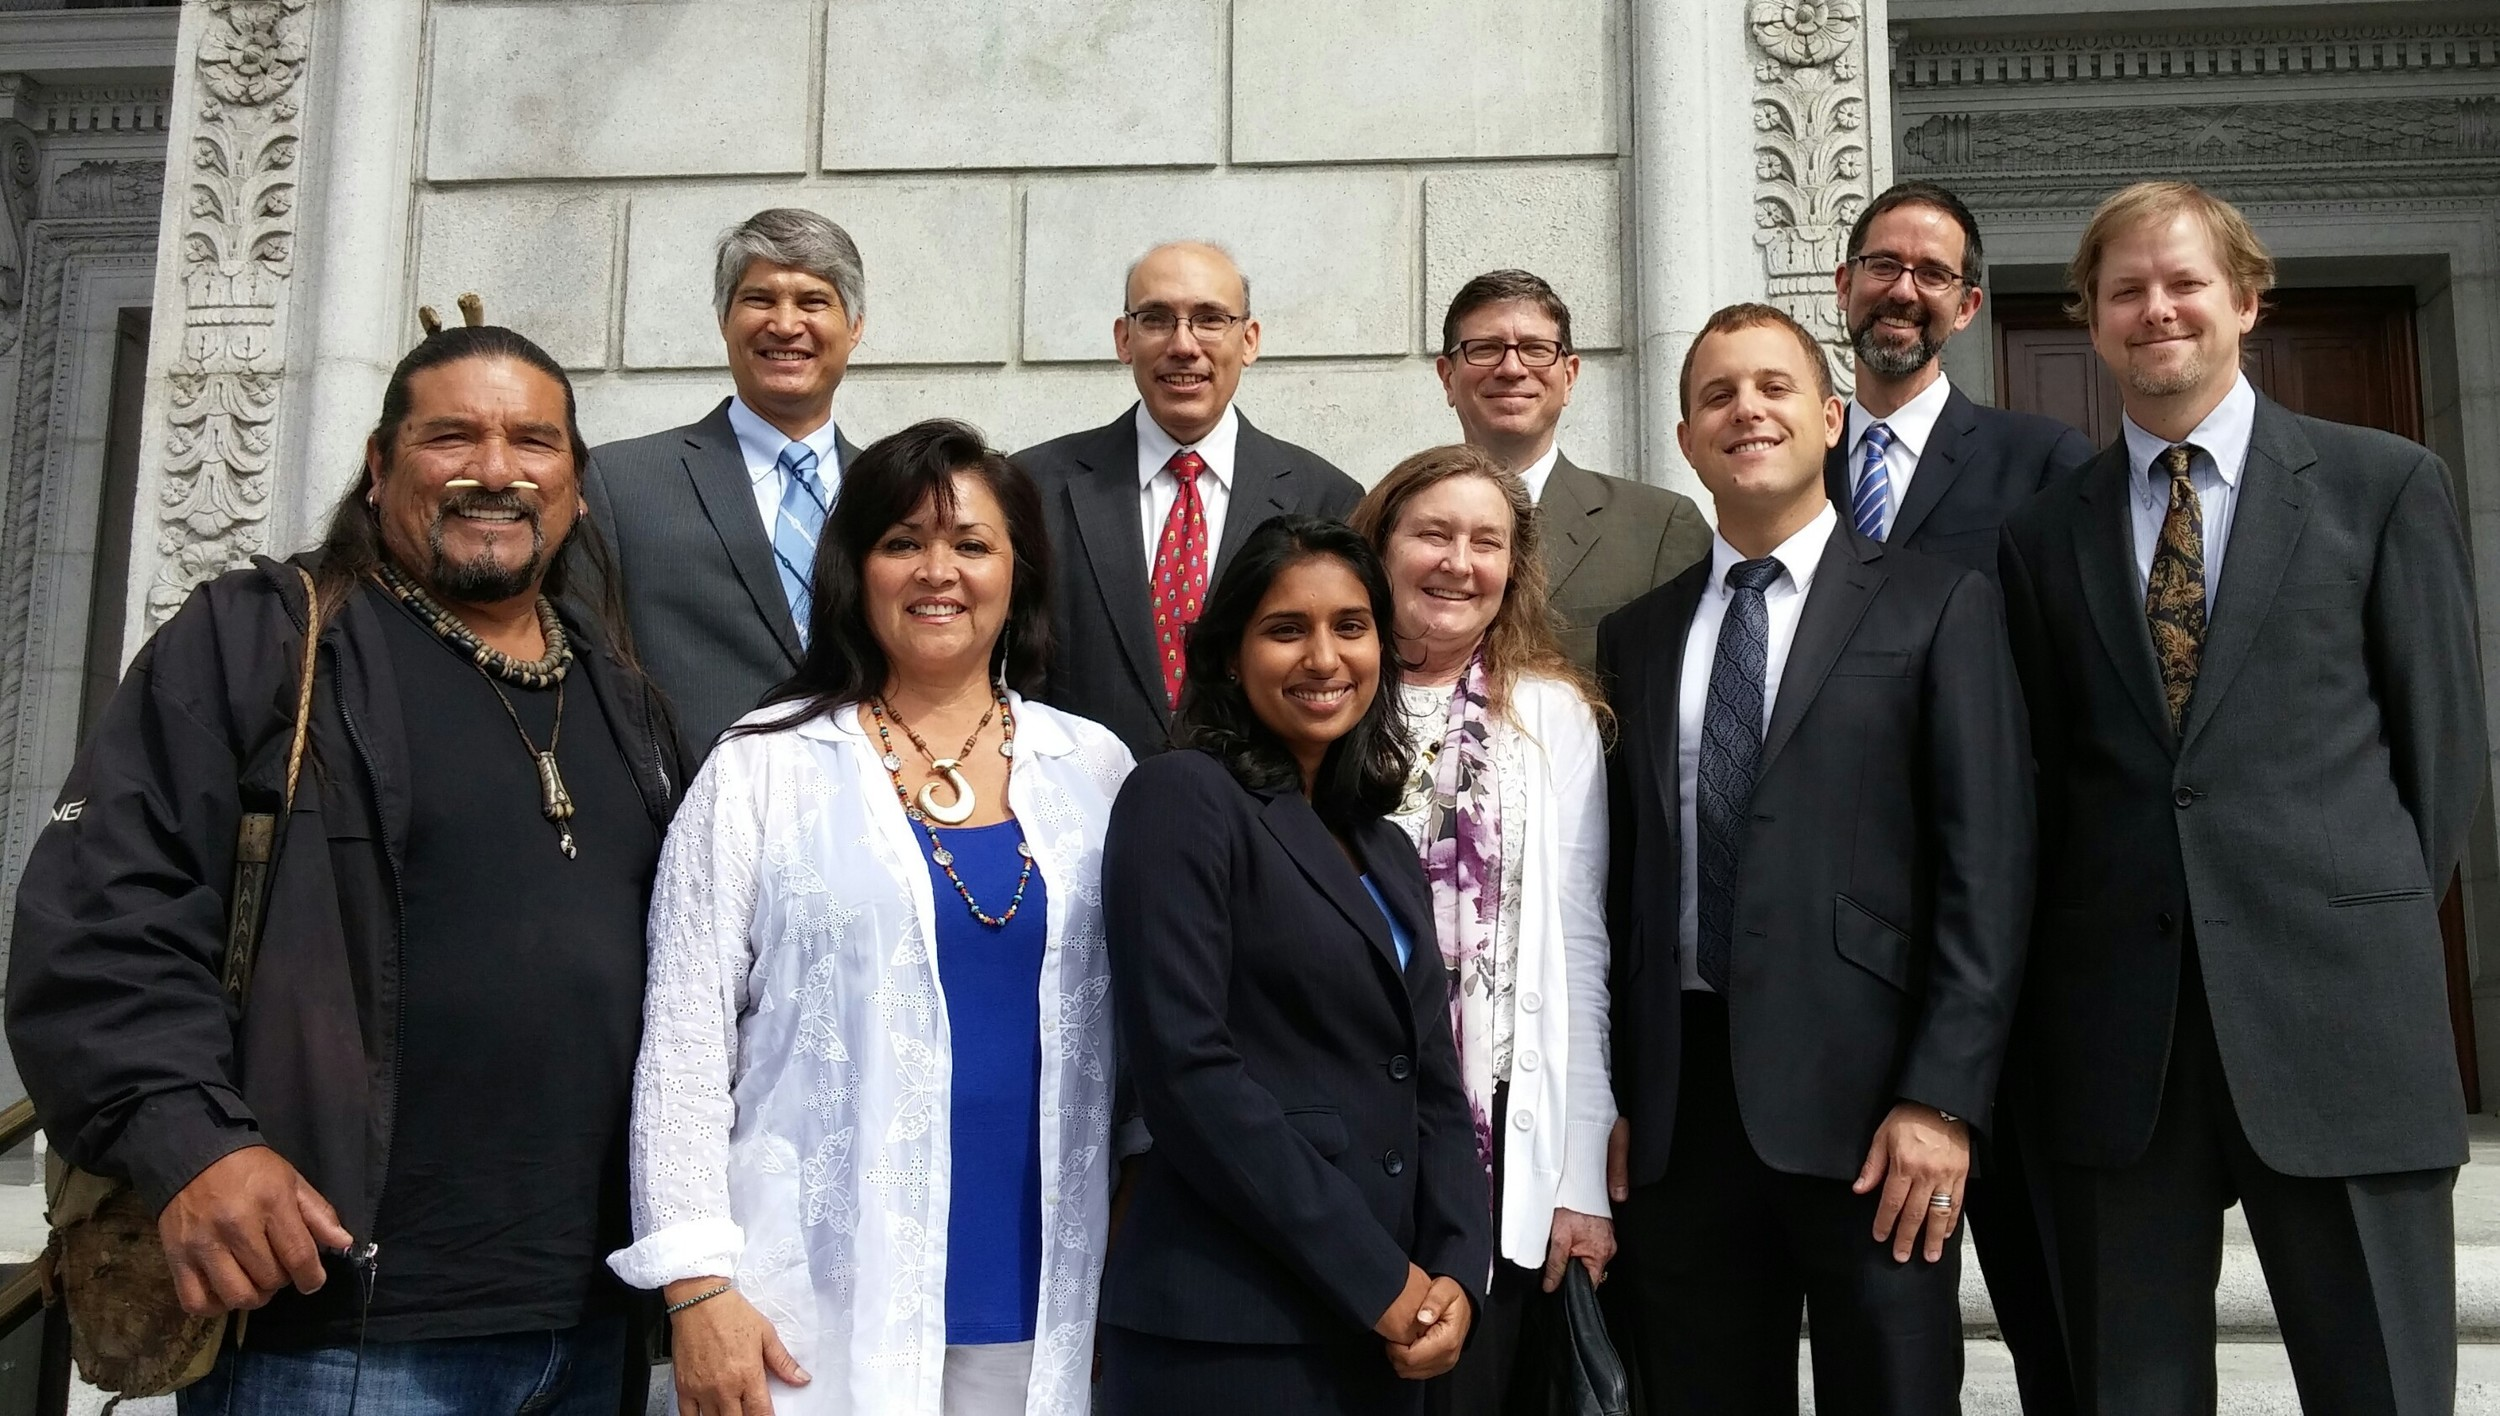 OUR TEAM MEMBERS IN ATTENDANCE FOR THE OUR SUPREME COURT ARGUMENT ON THE STEPS OF THE COURTHOUSE. TOP ROW FROM LEFT TO RIGHT: DOUG CARSTENS (CHATTEN-BROWN & CARSTENS), JOHN BUSE (CENTER FOR BIOLOGICAL DIVERSITY) SEAN HECHT (UCLA FRANK G. WELLS ENVIRONMENTAL LAW CLINIC), KEVIN BUNDY (CENTER FOR BIOLOGICAL DIVERSITY). BOTTOM ROW FROM LEFT TO RIGHT: MATI WAIYA (WISHTOYO/VENTURA COASTKEEPER), LUHUI ISHA (WISHTOYO/VENTURA COASTKEEPER), ARUNA PRABHALA (CENTER FOR BIOLOGICAL DIVERSITY), LYNNE PLAMBECK (SCOPE), JASON WEINER (WISHTOYO/VENTURA COASTKEEPER), ADAM KEATS